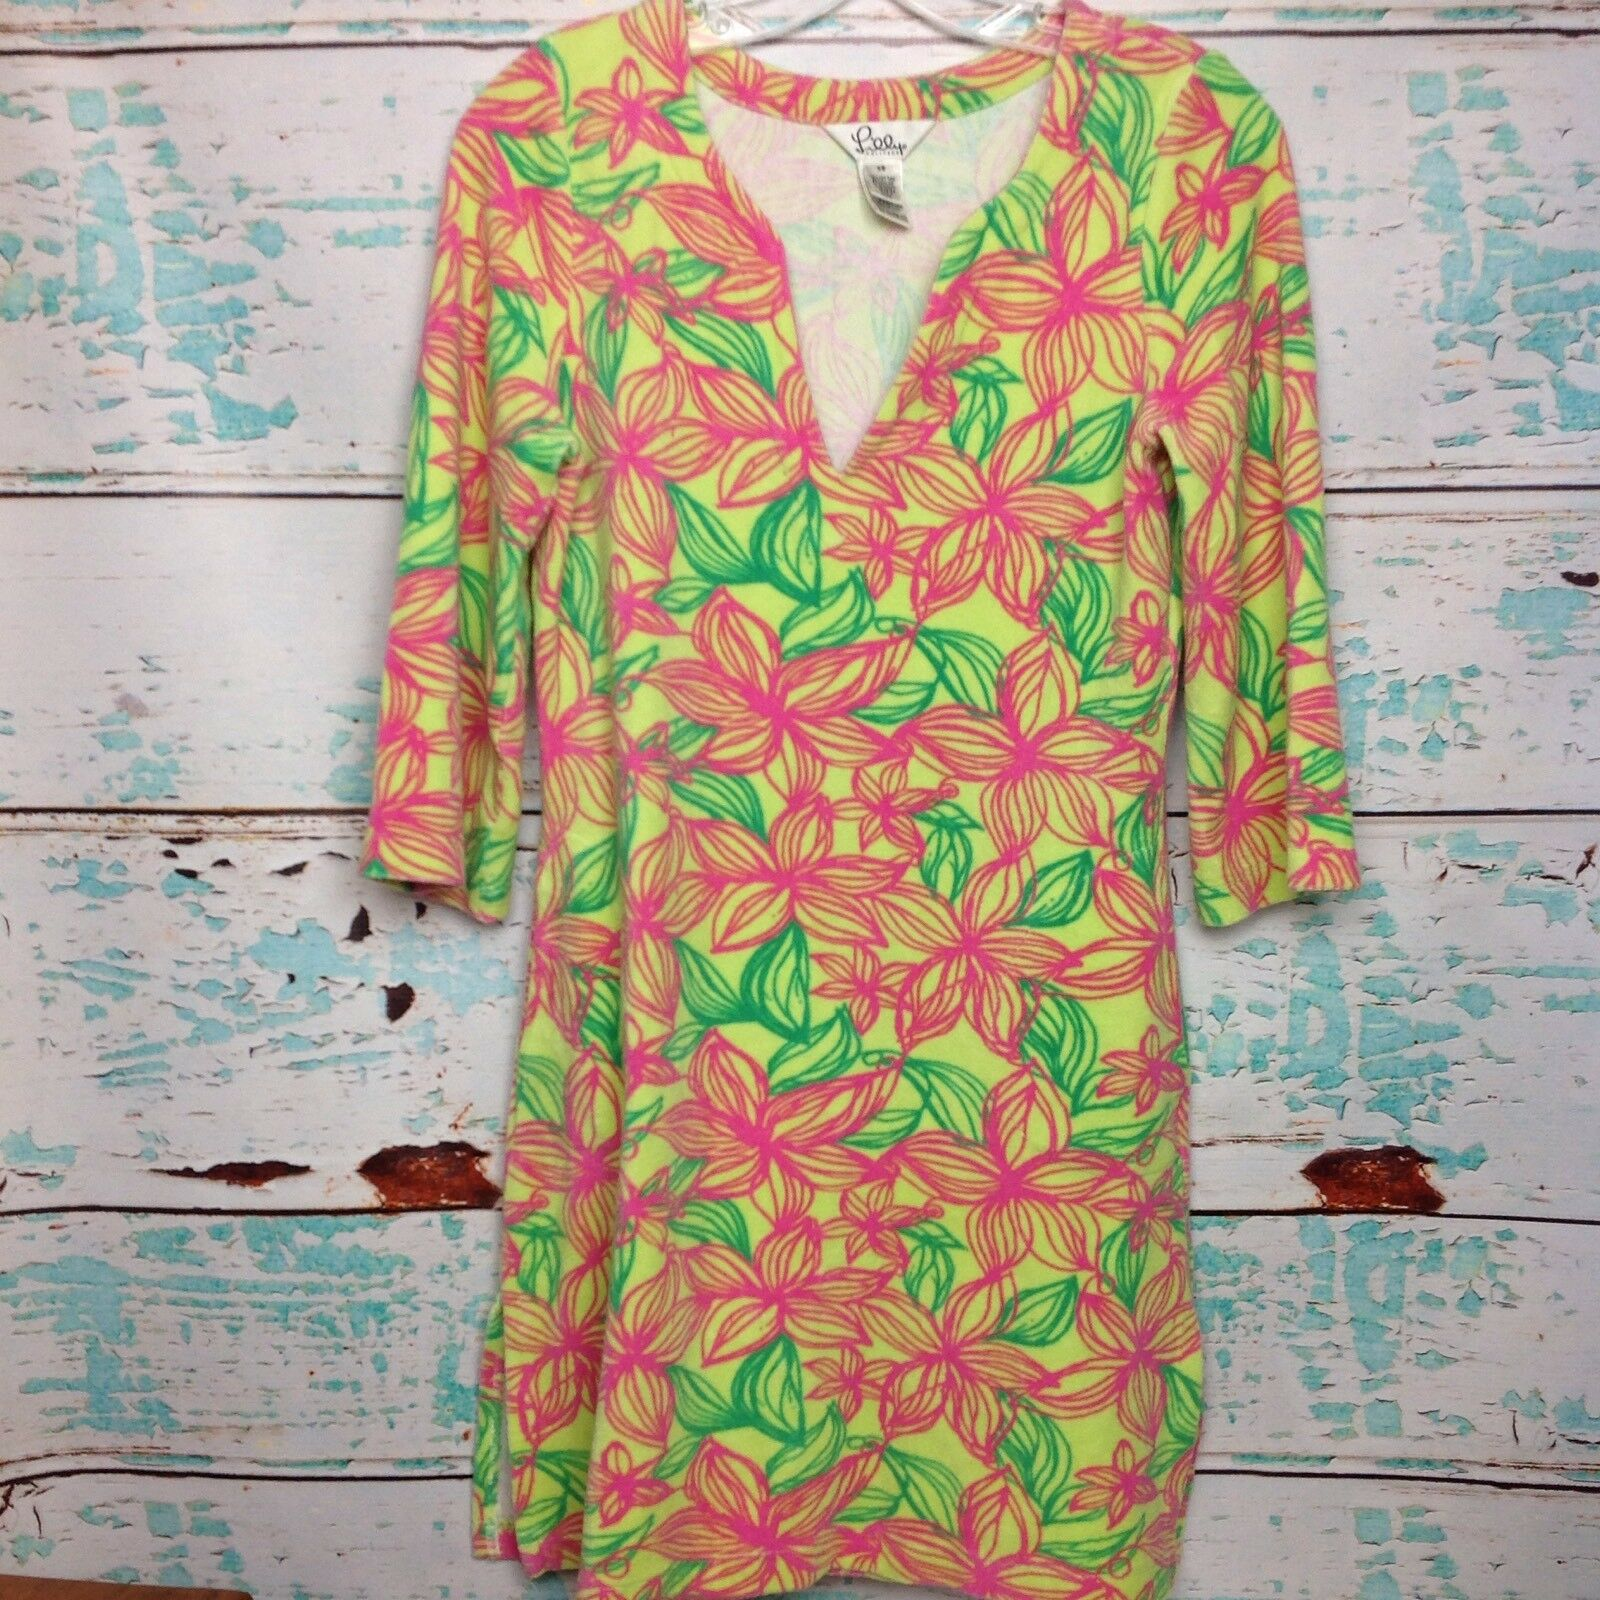 Vintage Lilly Pulitzer Rosa Floral Terry Tunic Top XS Extra Small Pool Cover Up